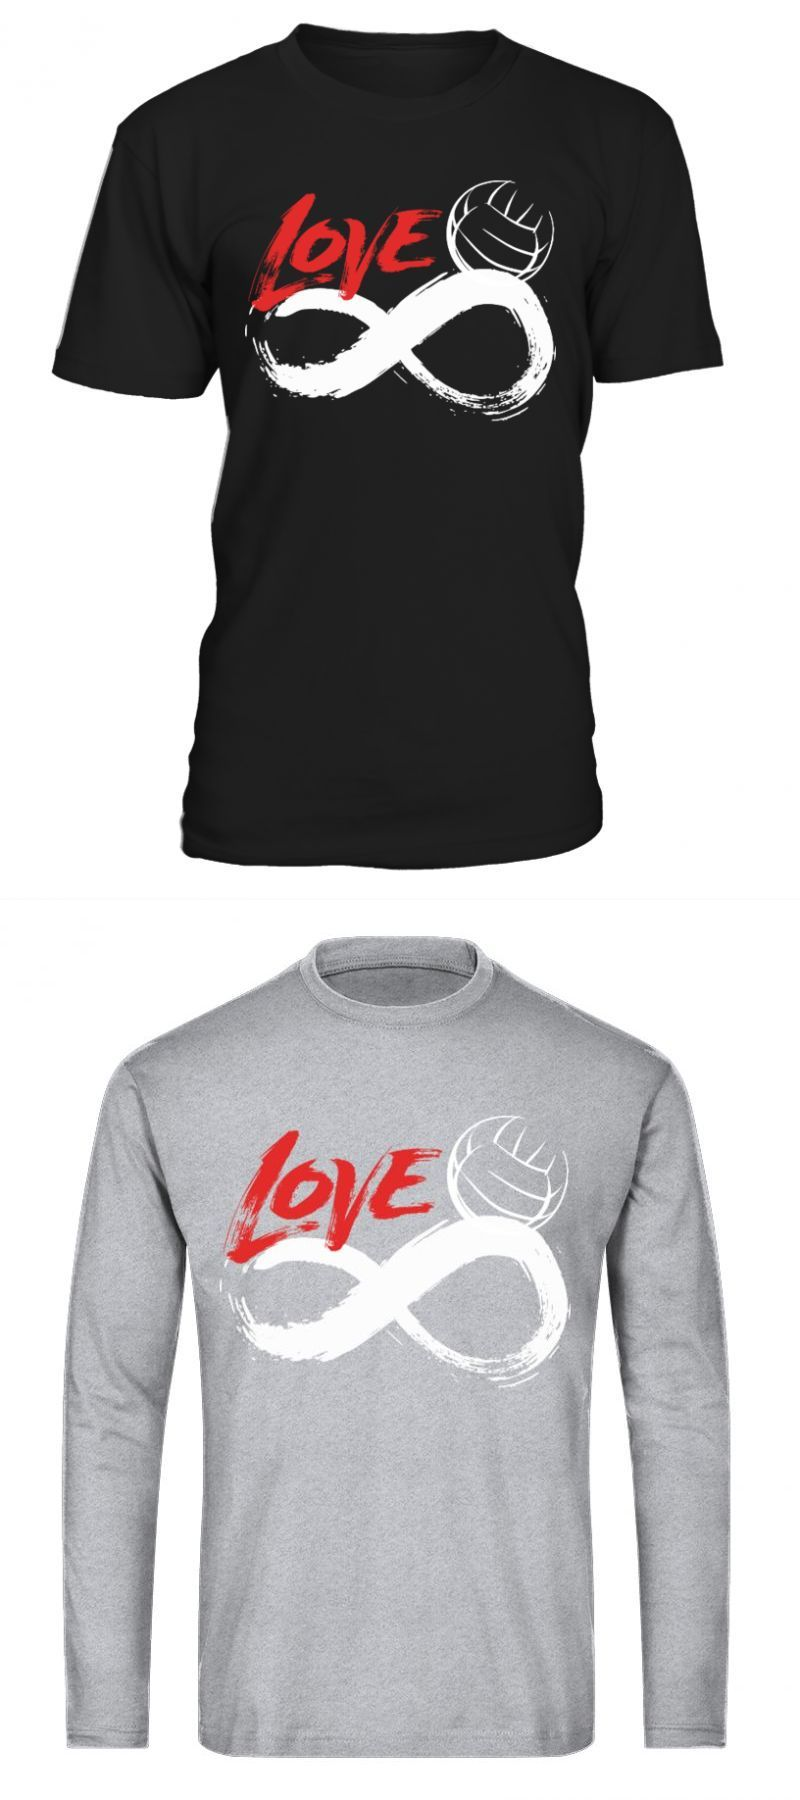 Volleyball T Shirt Images Infinite Volleyball Love Volleyball Tournament T Shirt Designs Volleyball S T Shirt Image Volleyball Tshirts Volleyball Tournaments